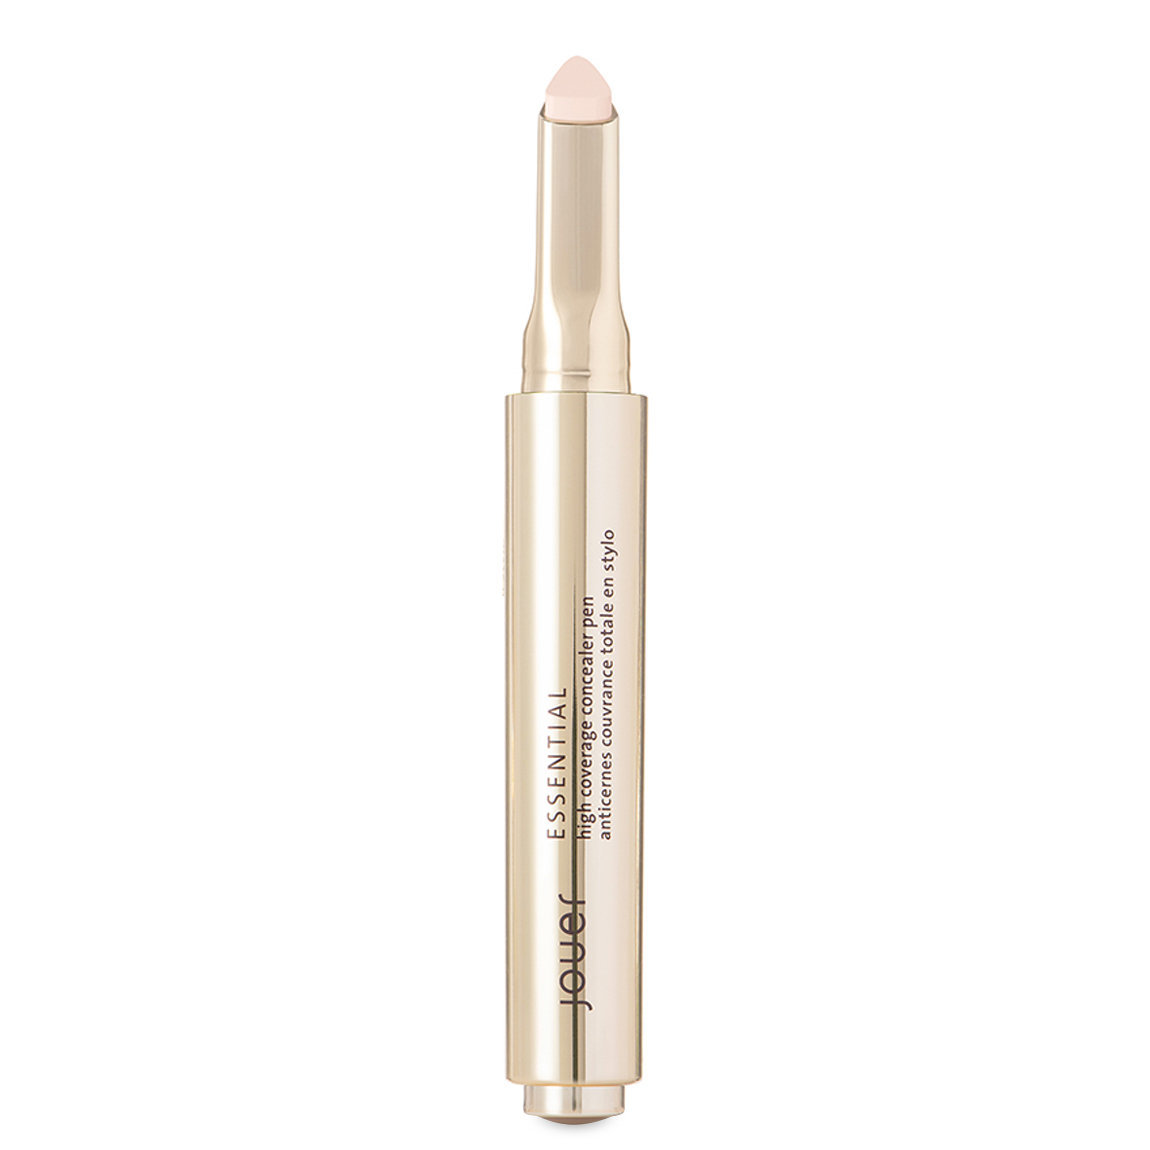 Jouer Cosmetics Essential High Coverage Concealer Pen Snow alternative view 1.